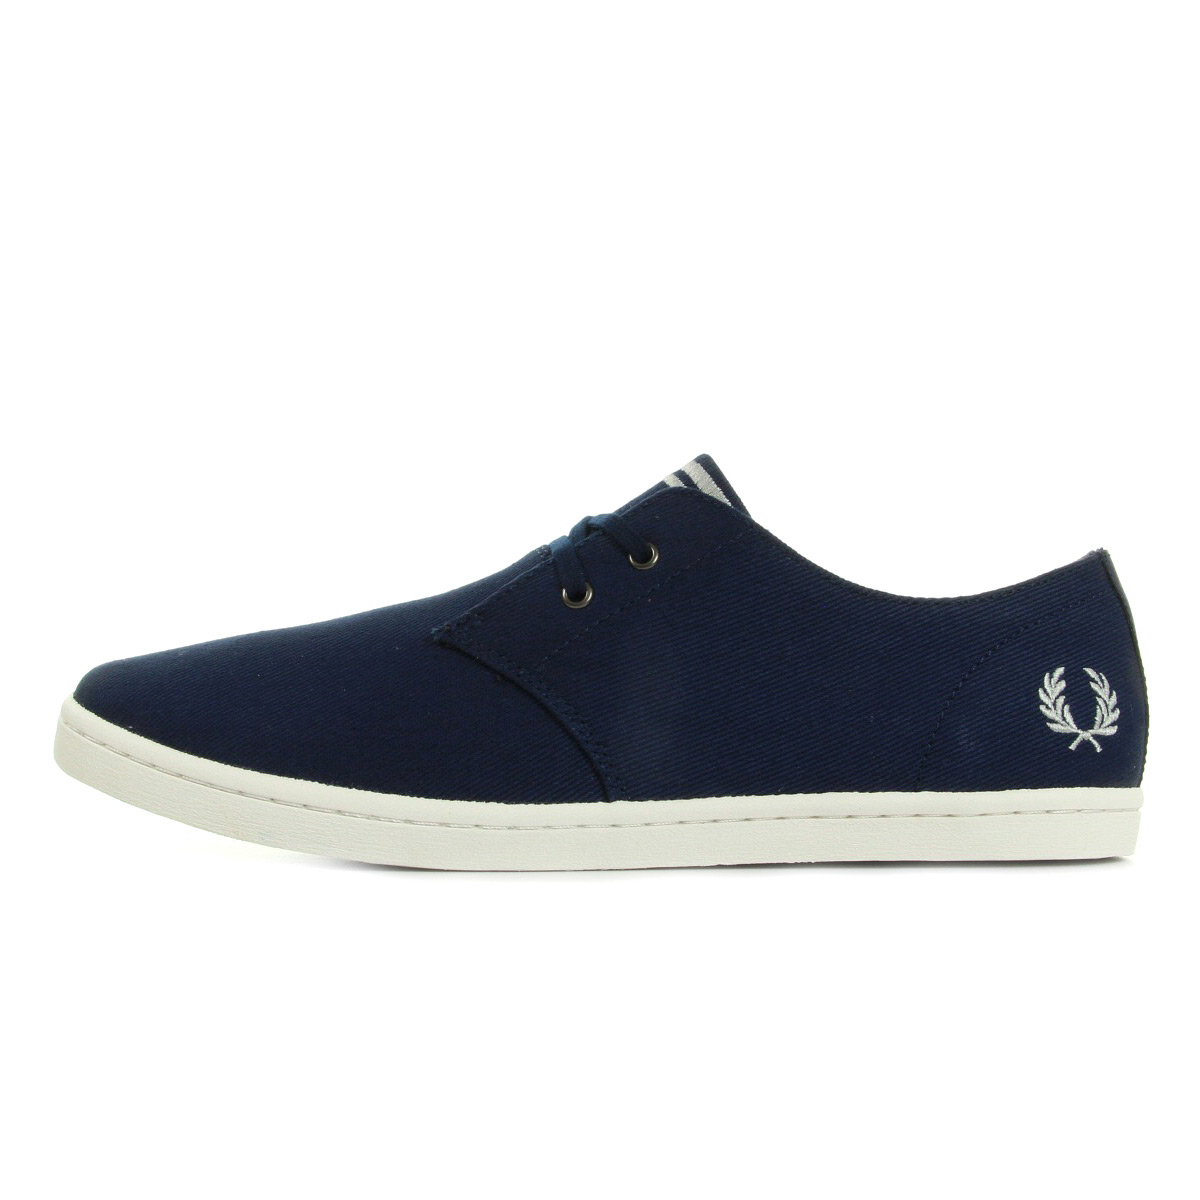 fred perry byron low twill french navy silver b8233143 chaussures homme homme. Black Bedroom Furniture Sets. Home Design Ideas